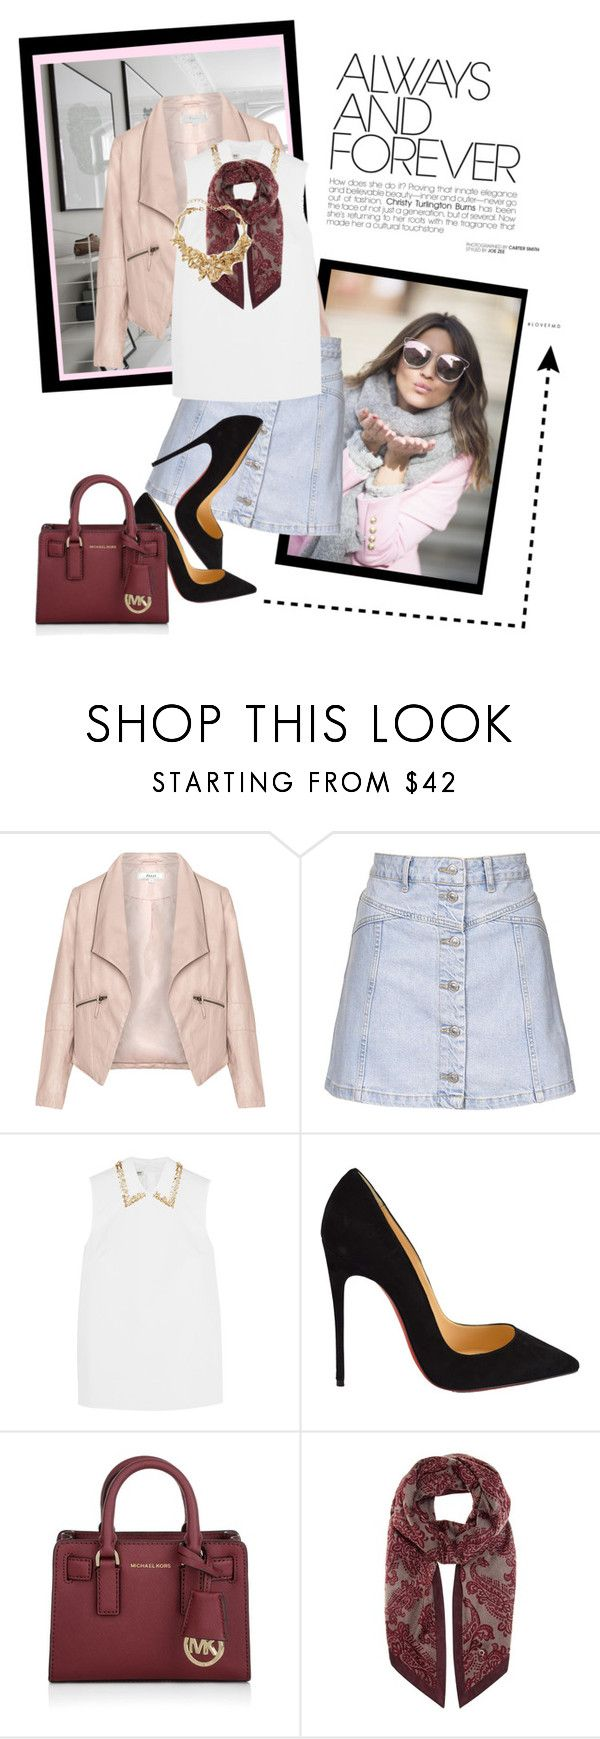 """Mini denim"" by lindagama ❤ liked on Polyvore featuring Zizzi, Topshop, Miu Miu, Christian Louboutin, Michael Kors, Loro Piana, Oscar de la Renta, women's clothing, women and female"